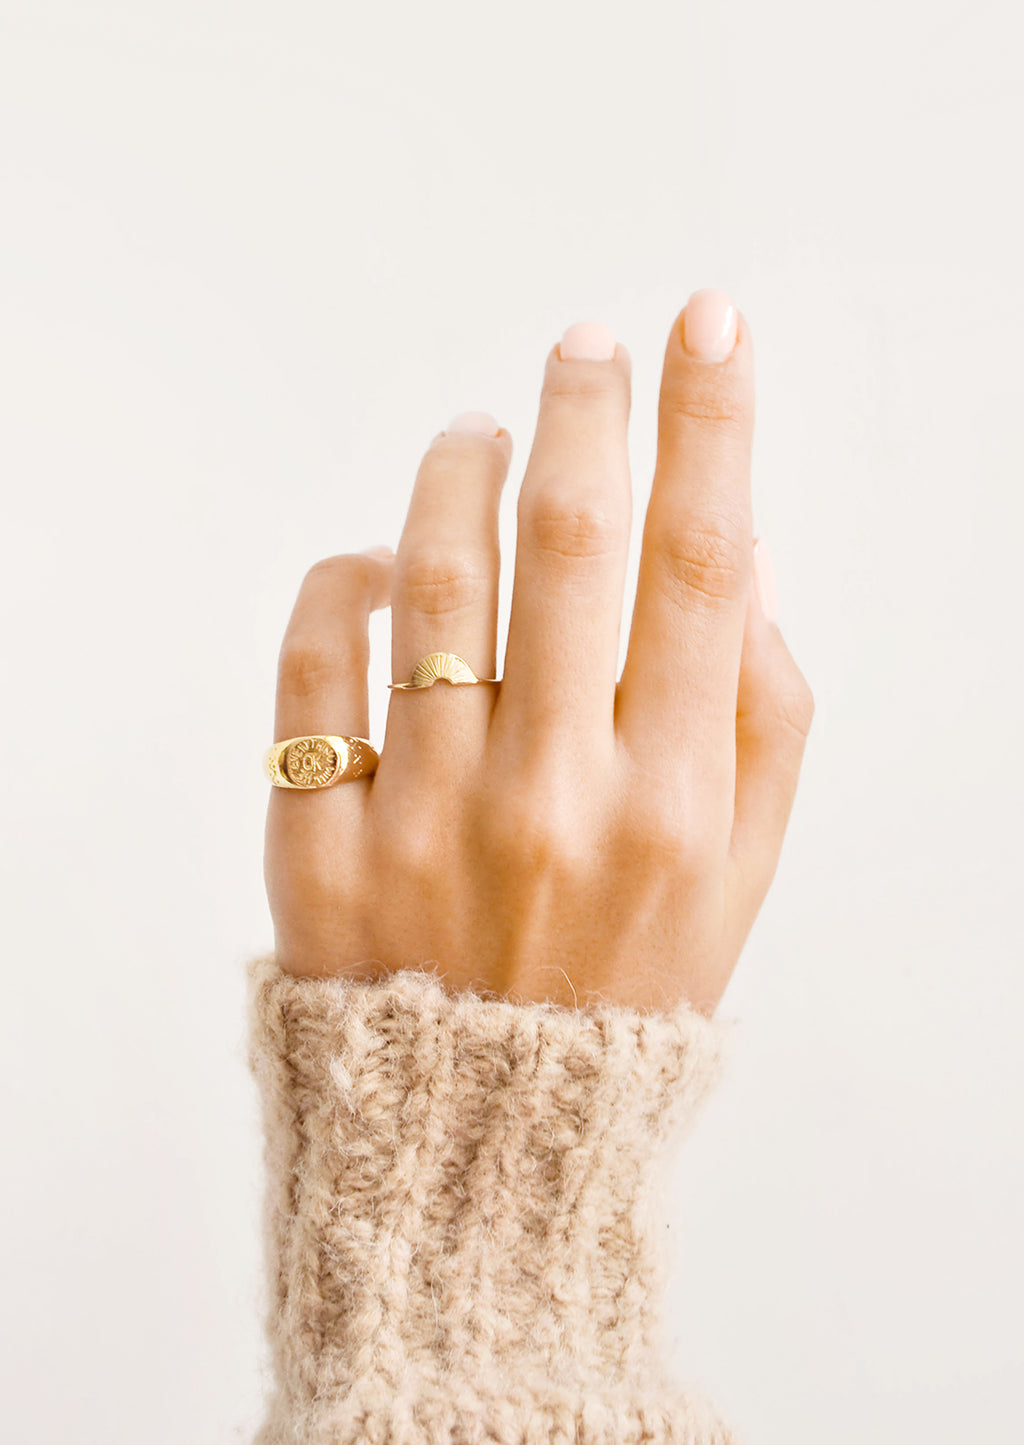 2: Model shot of hand wearing two gold rings.